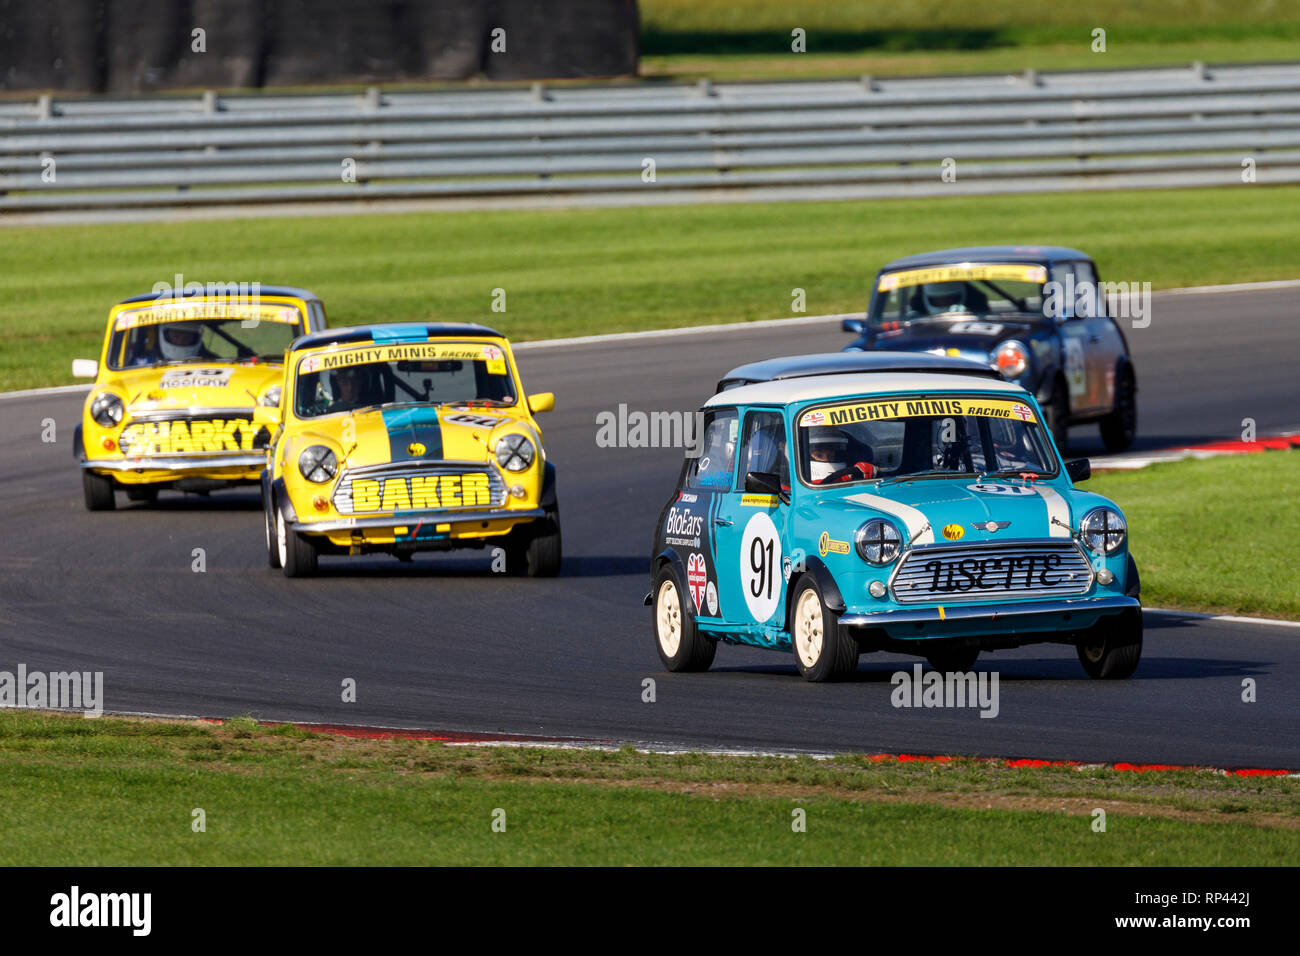 Lisette Ogborn leads the Mighty Minis through Palmer at the Snetterton 2018 Championship meeting, Norfolk, UK. - Stock Image